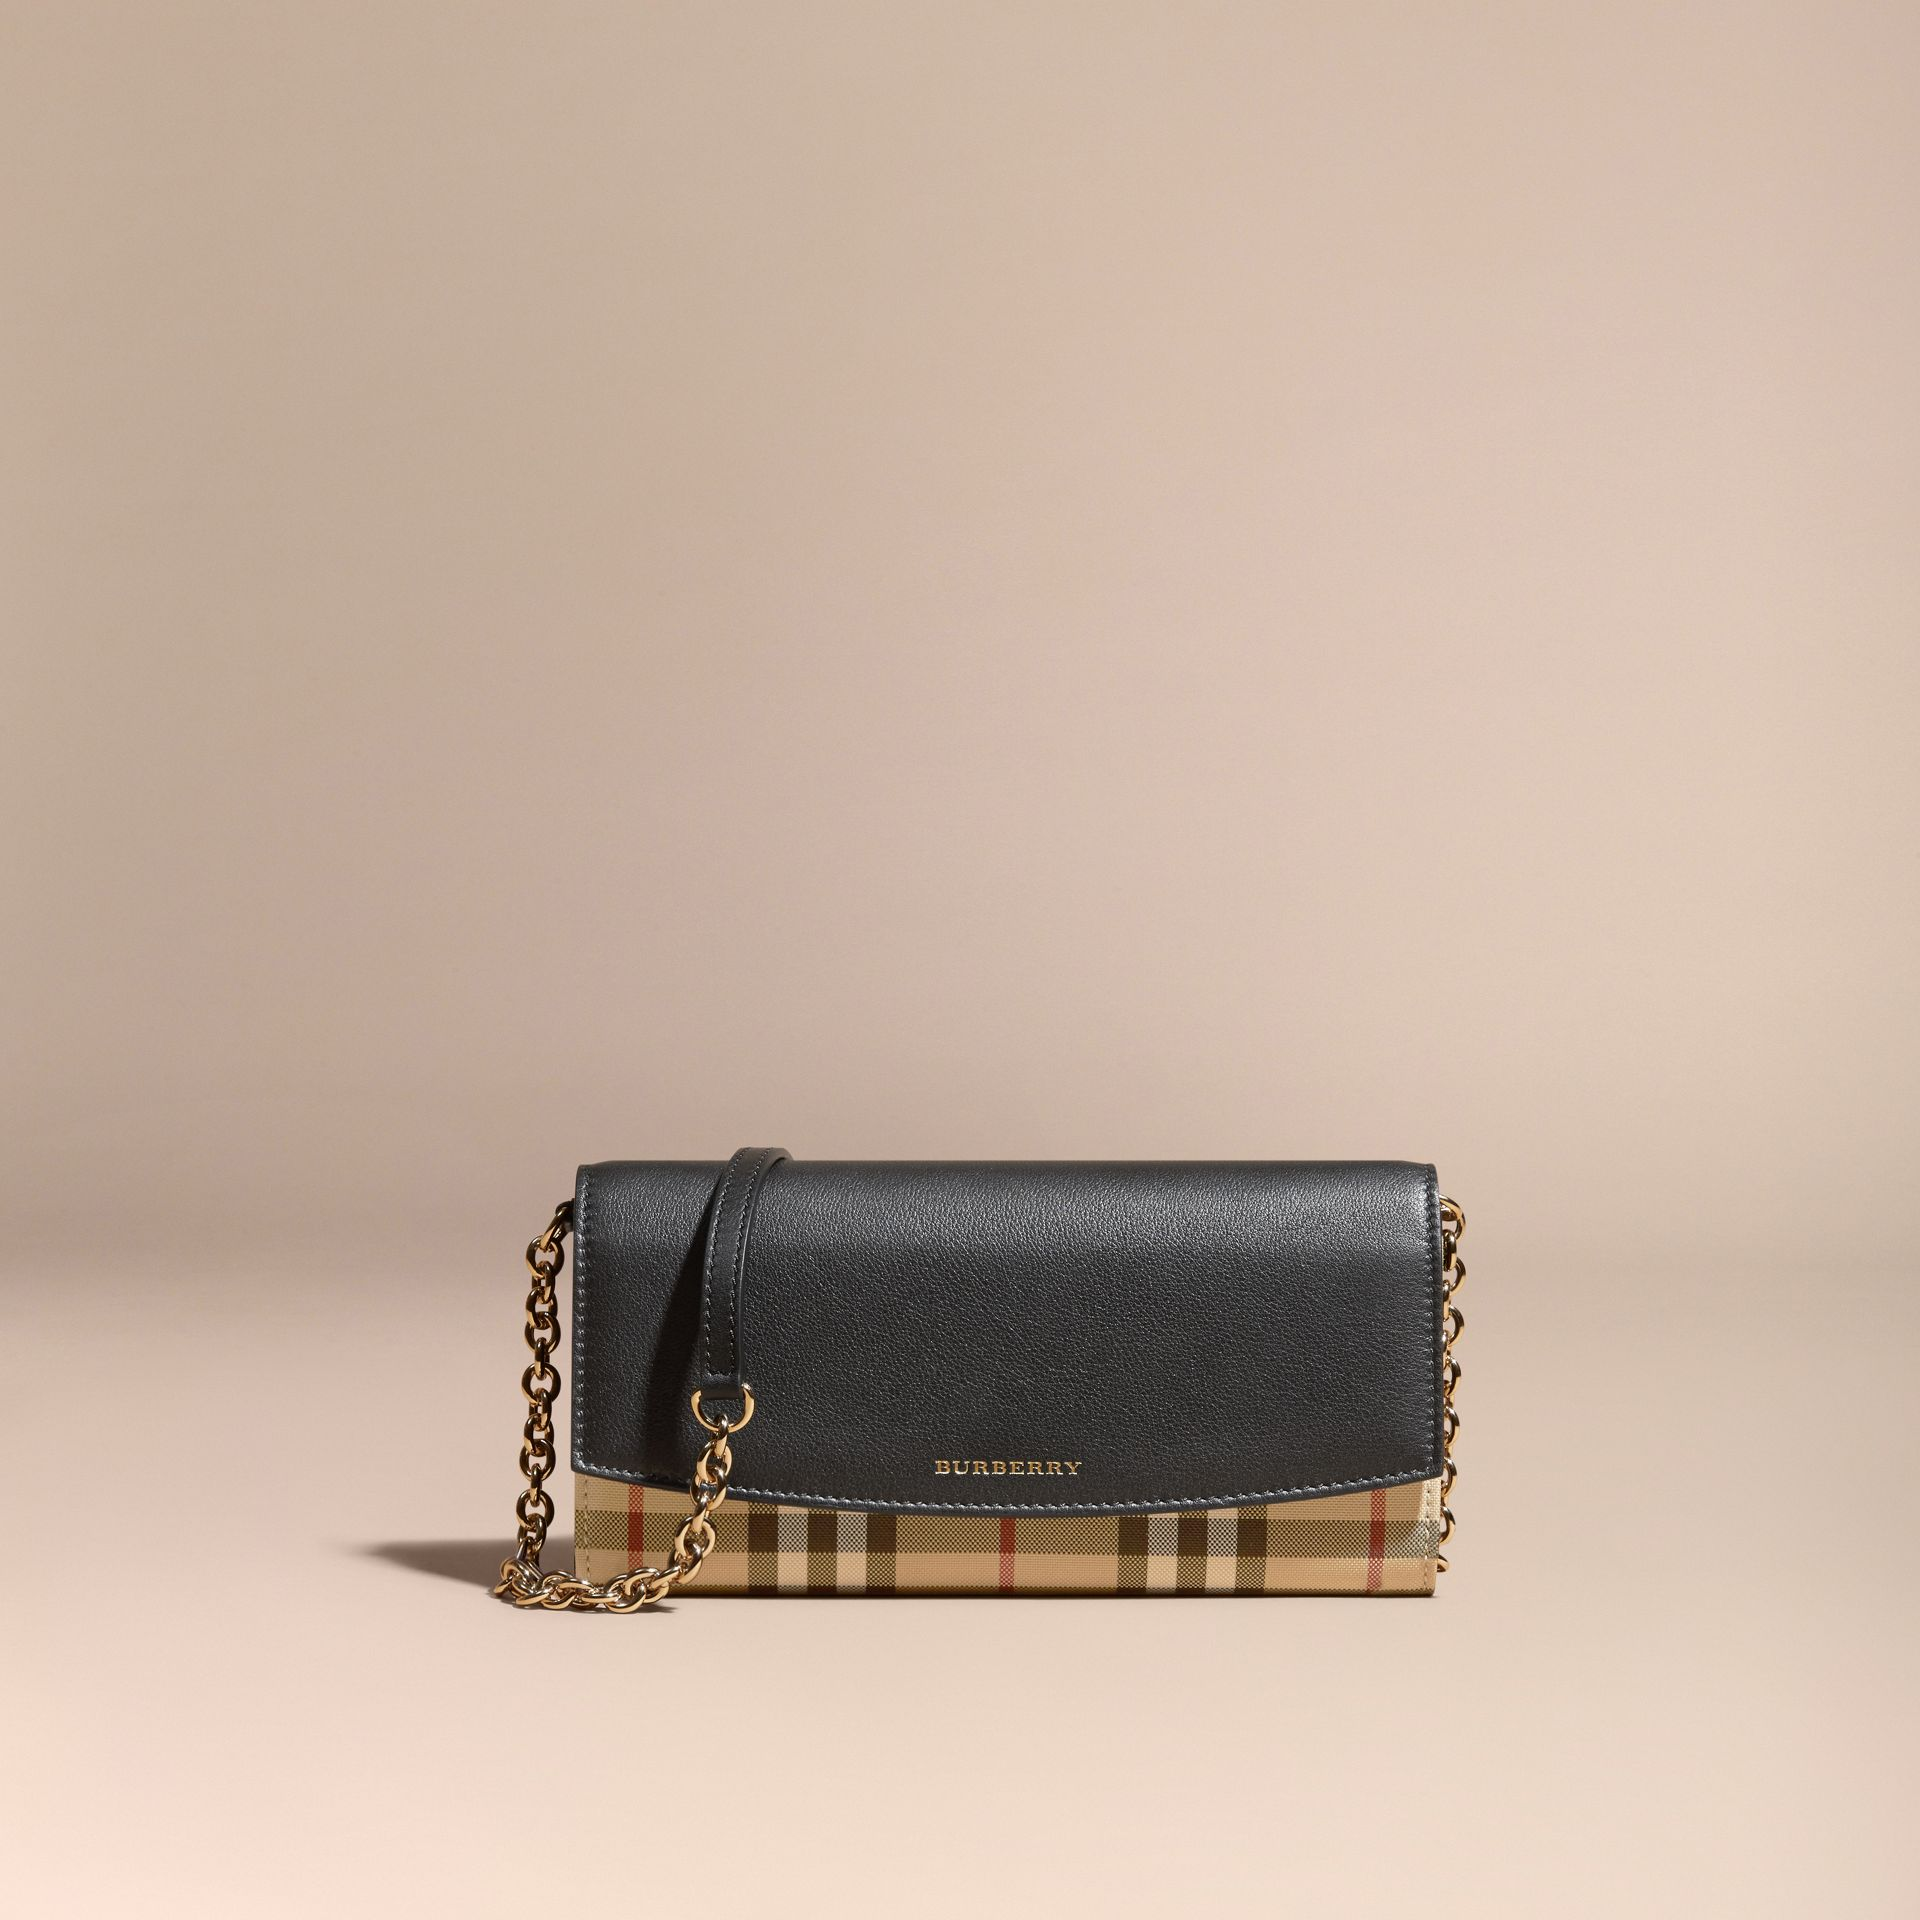 Horseferry Check and Leather Wallet with Chain in Black - Women | Burberry - gallery image 7